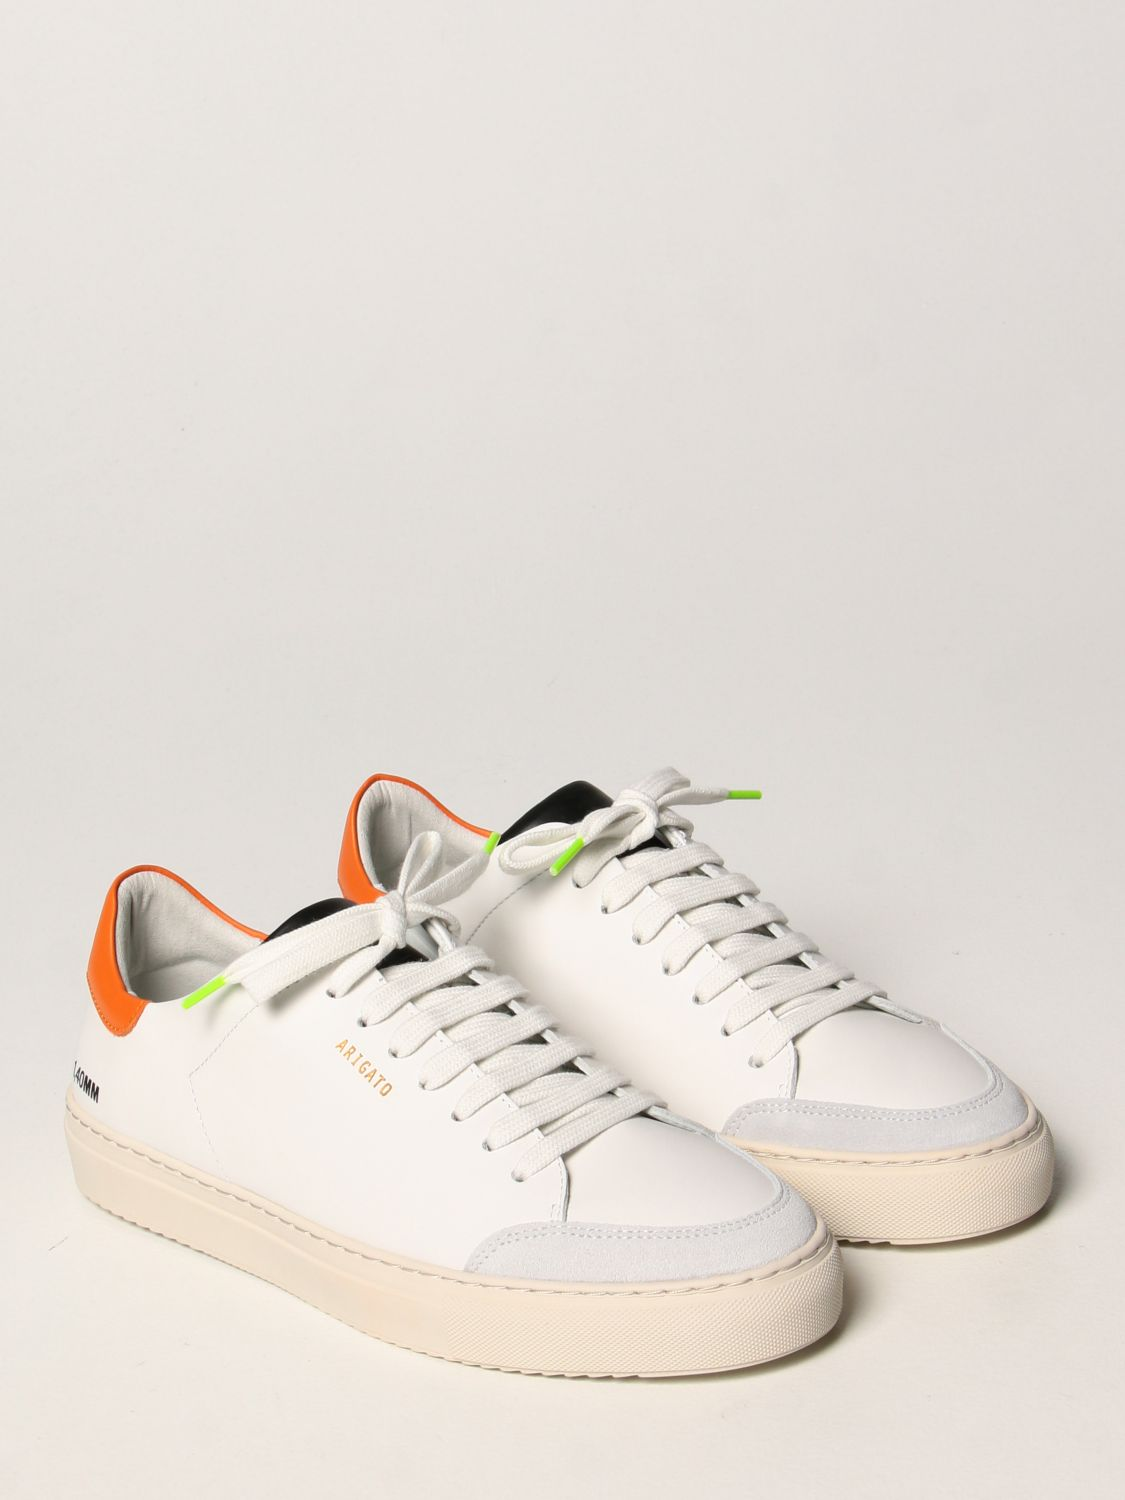 Trainers Axel Arigato: Axel Arigato sneakers in leather with logo orange 2